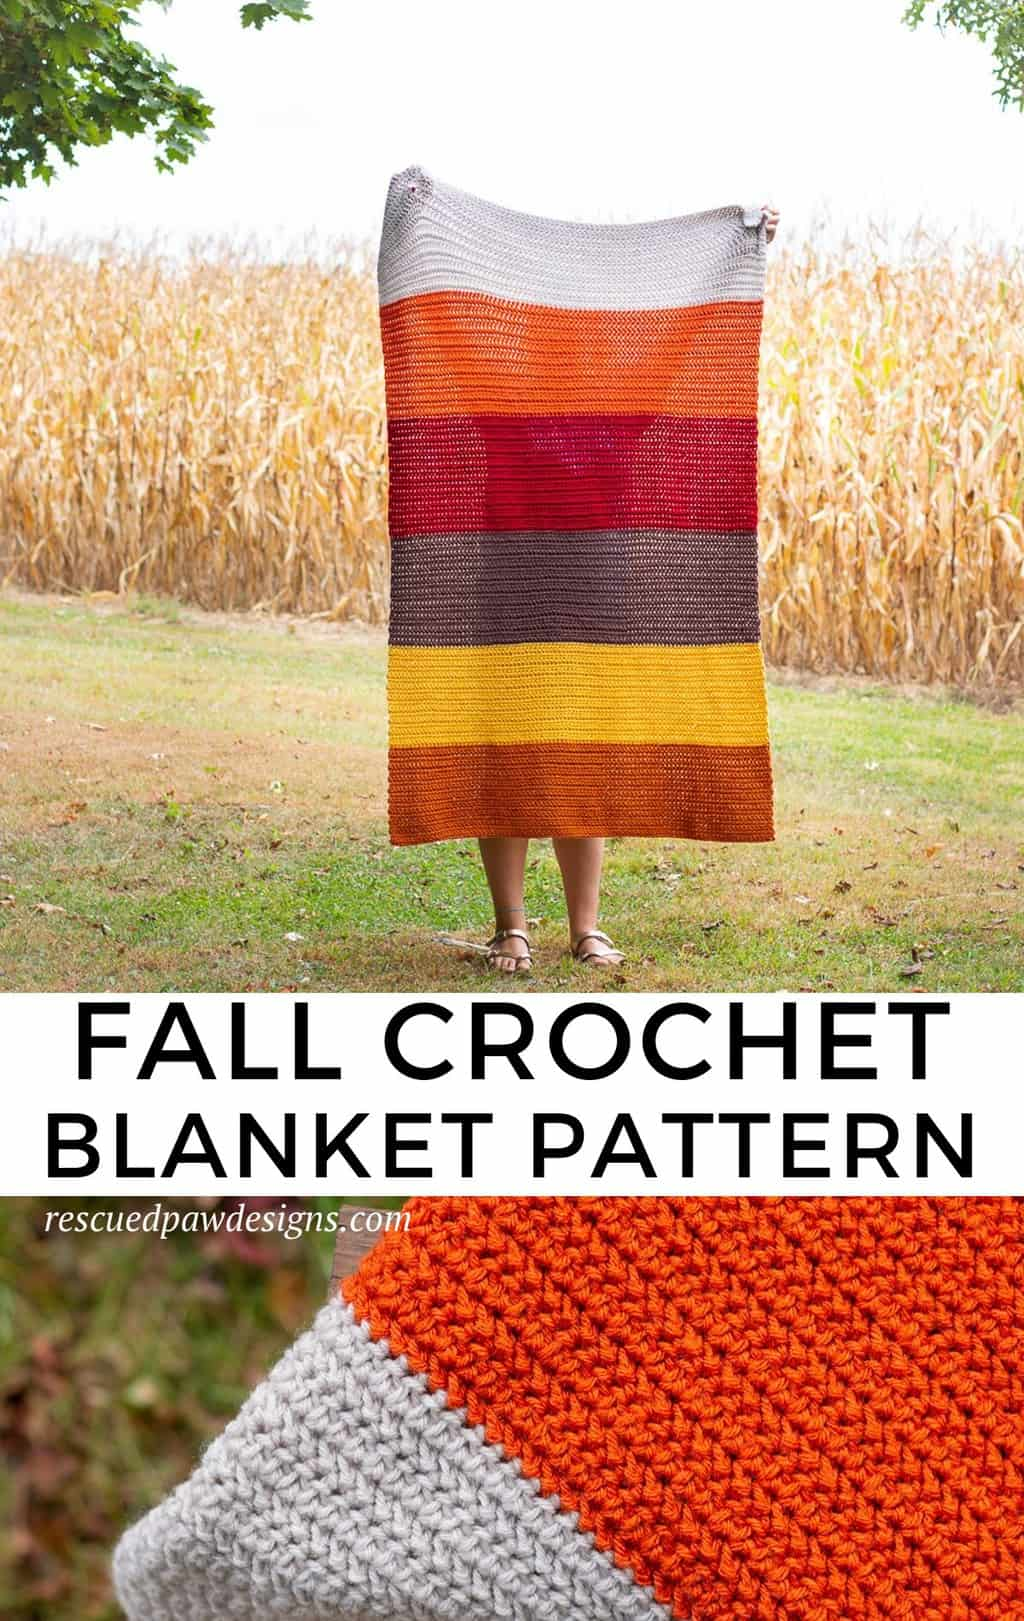 Color Blocked Crochet Blanket Pattern using the herringbone half double crochet stitch HHDC